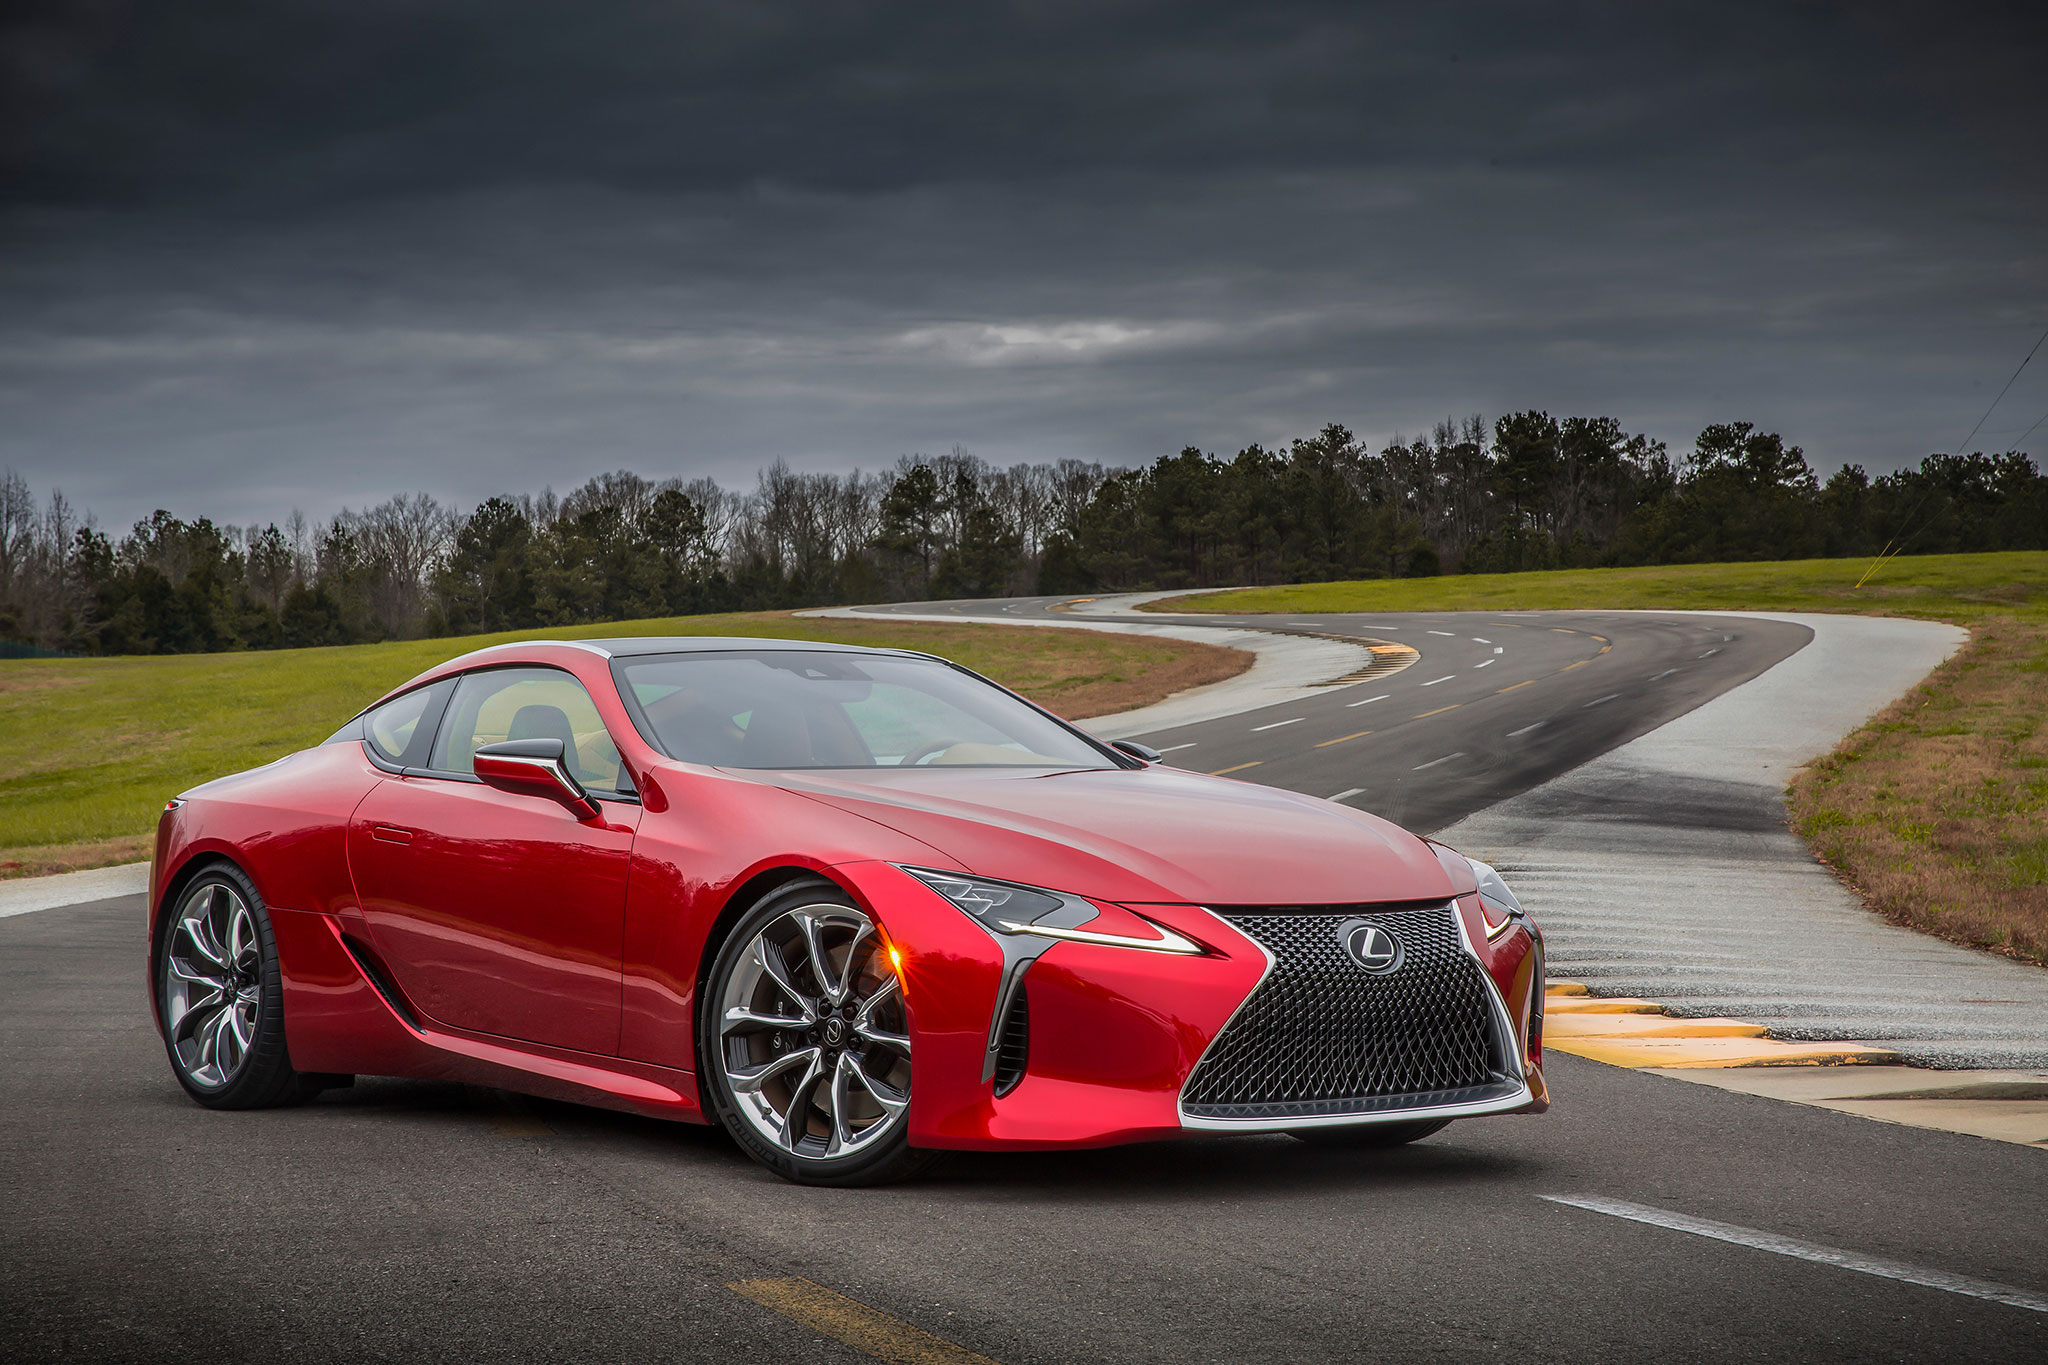 Lexus delivers flagship performance in the 2018 LC 500 | In Wheel Time